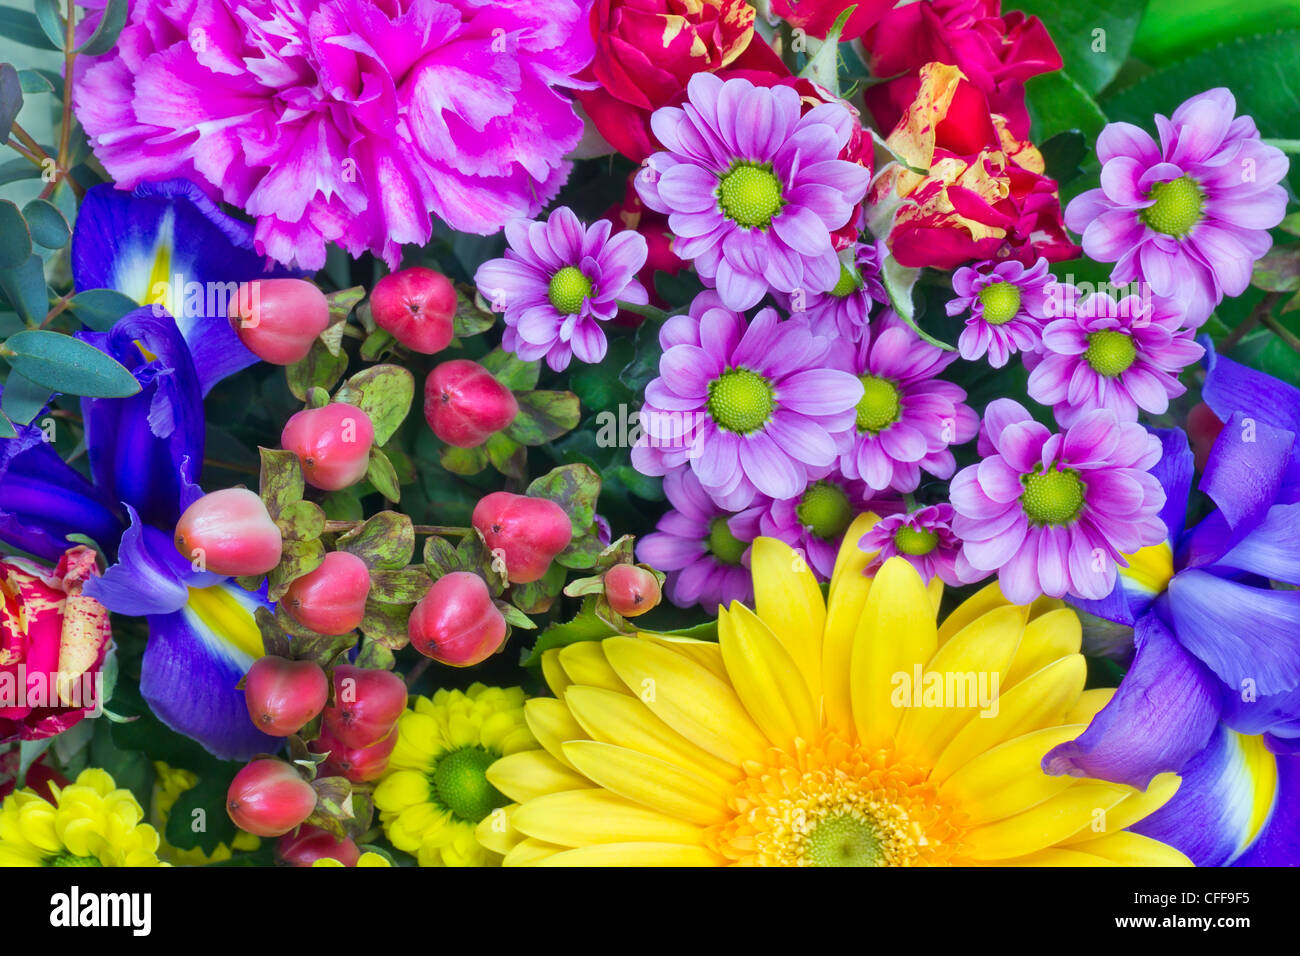 Magenta Pink Yellow Flowers Stock Photos Magenta Pink Yellow